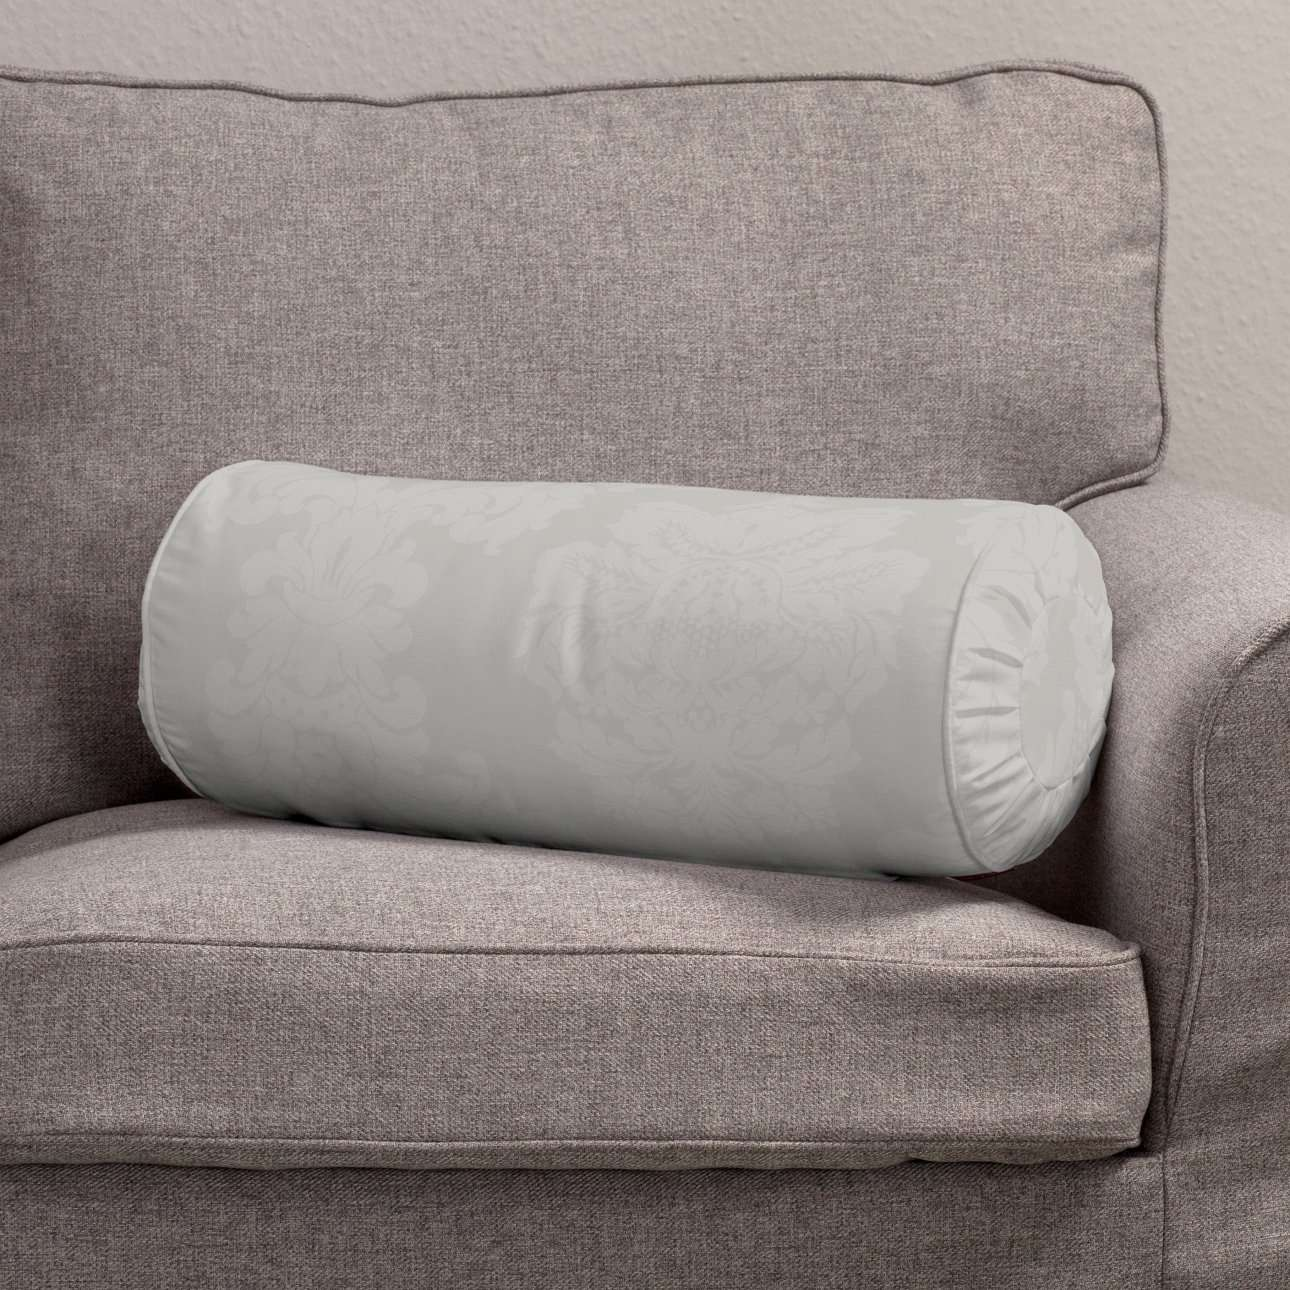 Bolster cushion with pleats in collection Damasco, fabric: 613-81